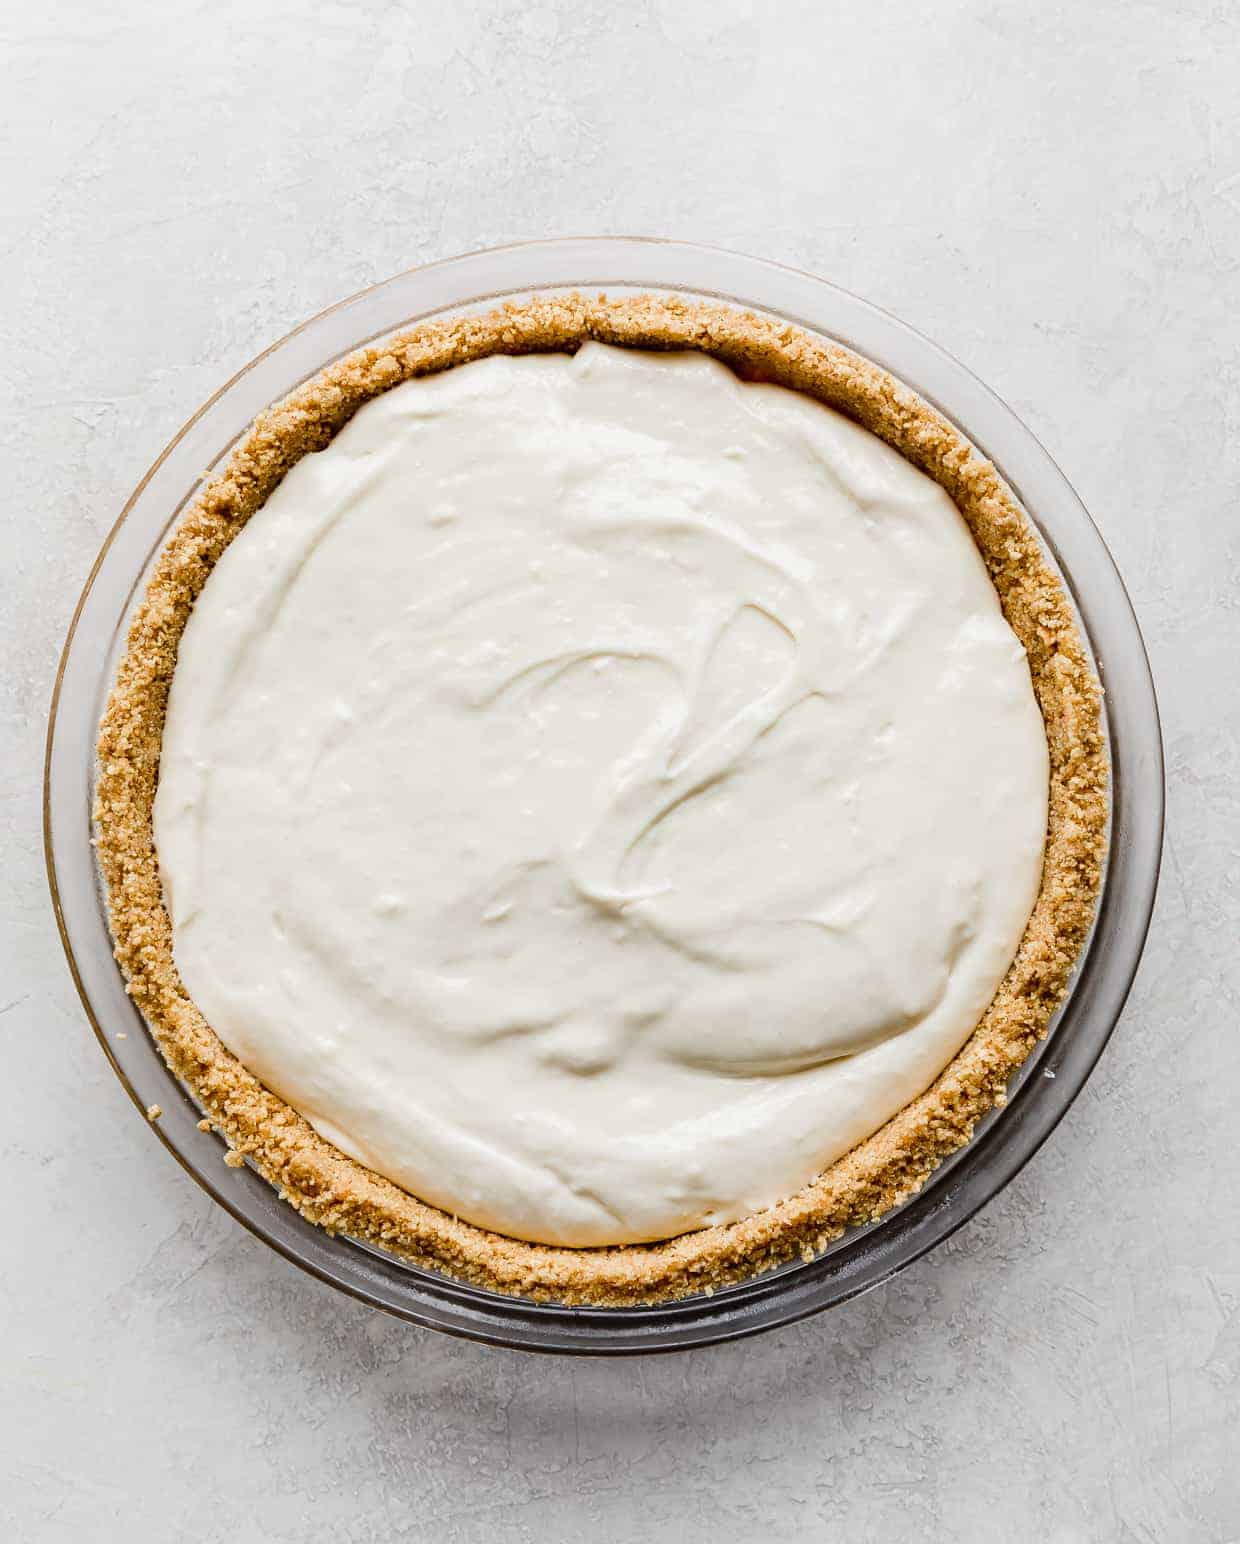 A Easy No-Bake Cheesecake in a graham cracker pie crust on a light gray background.